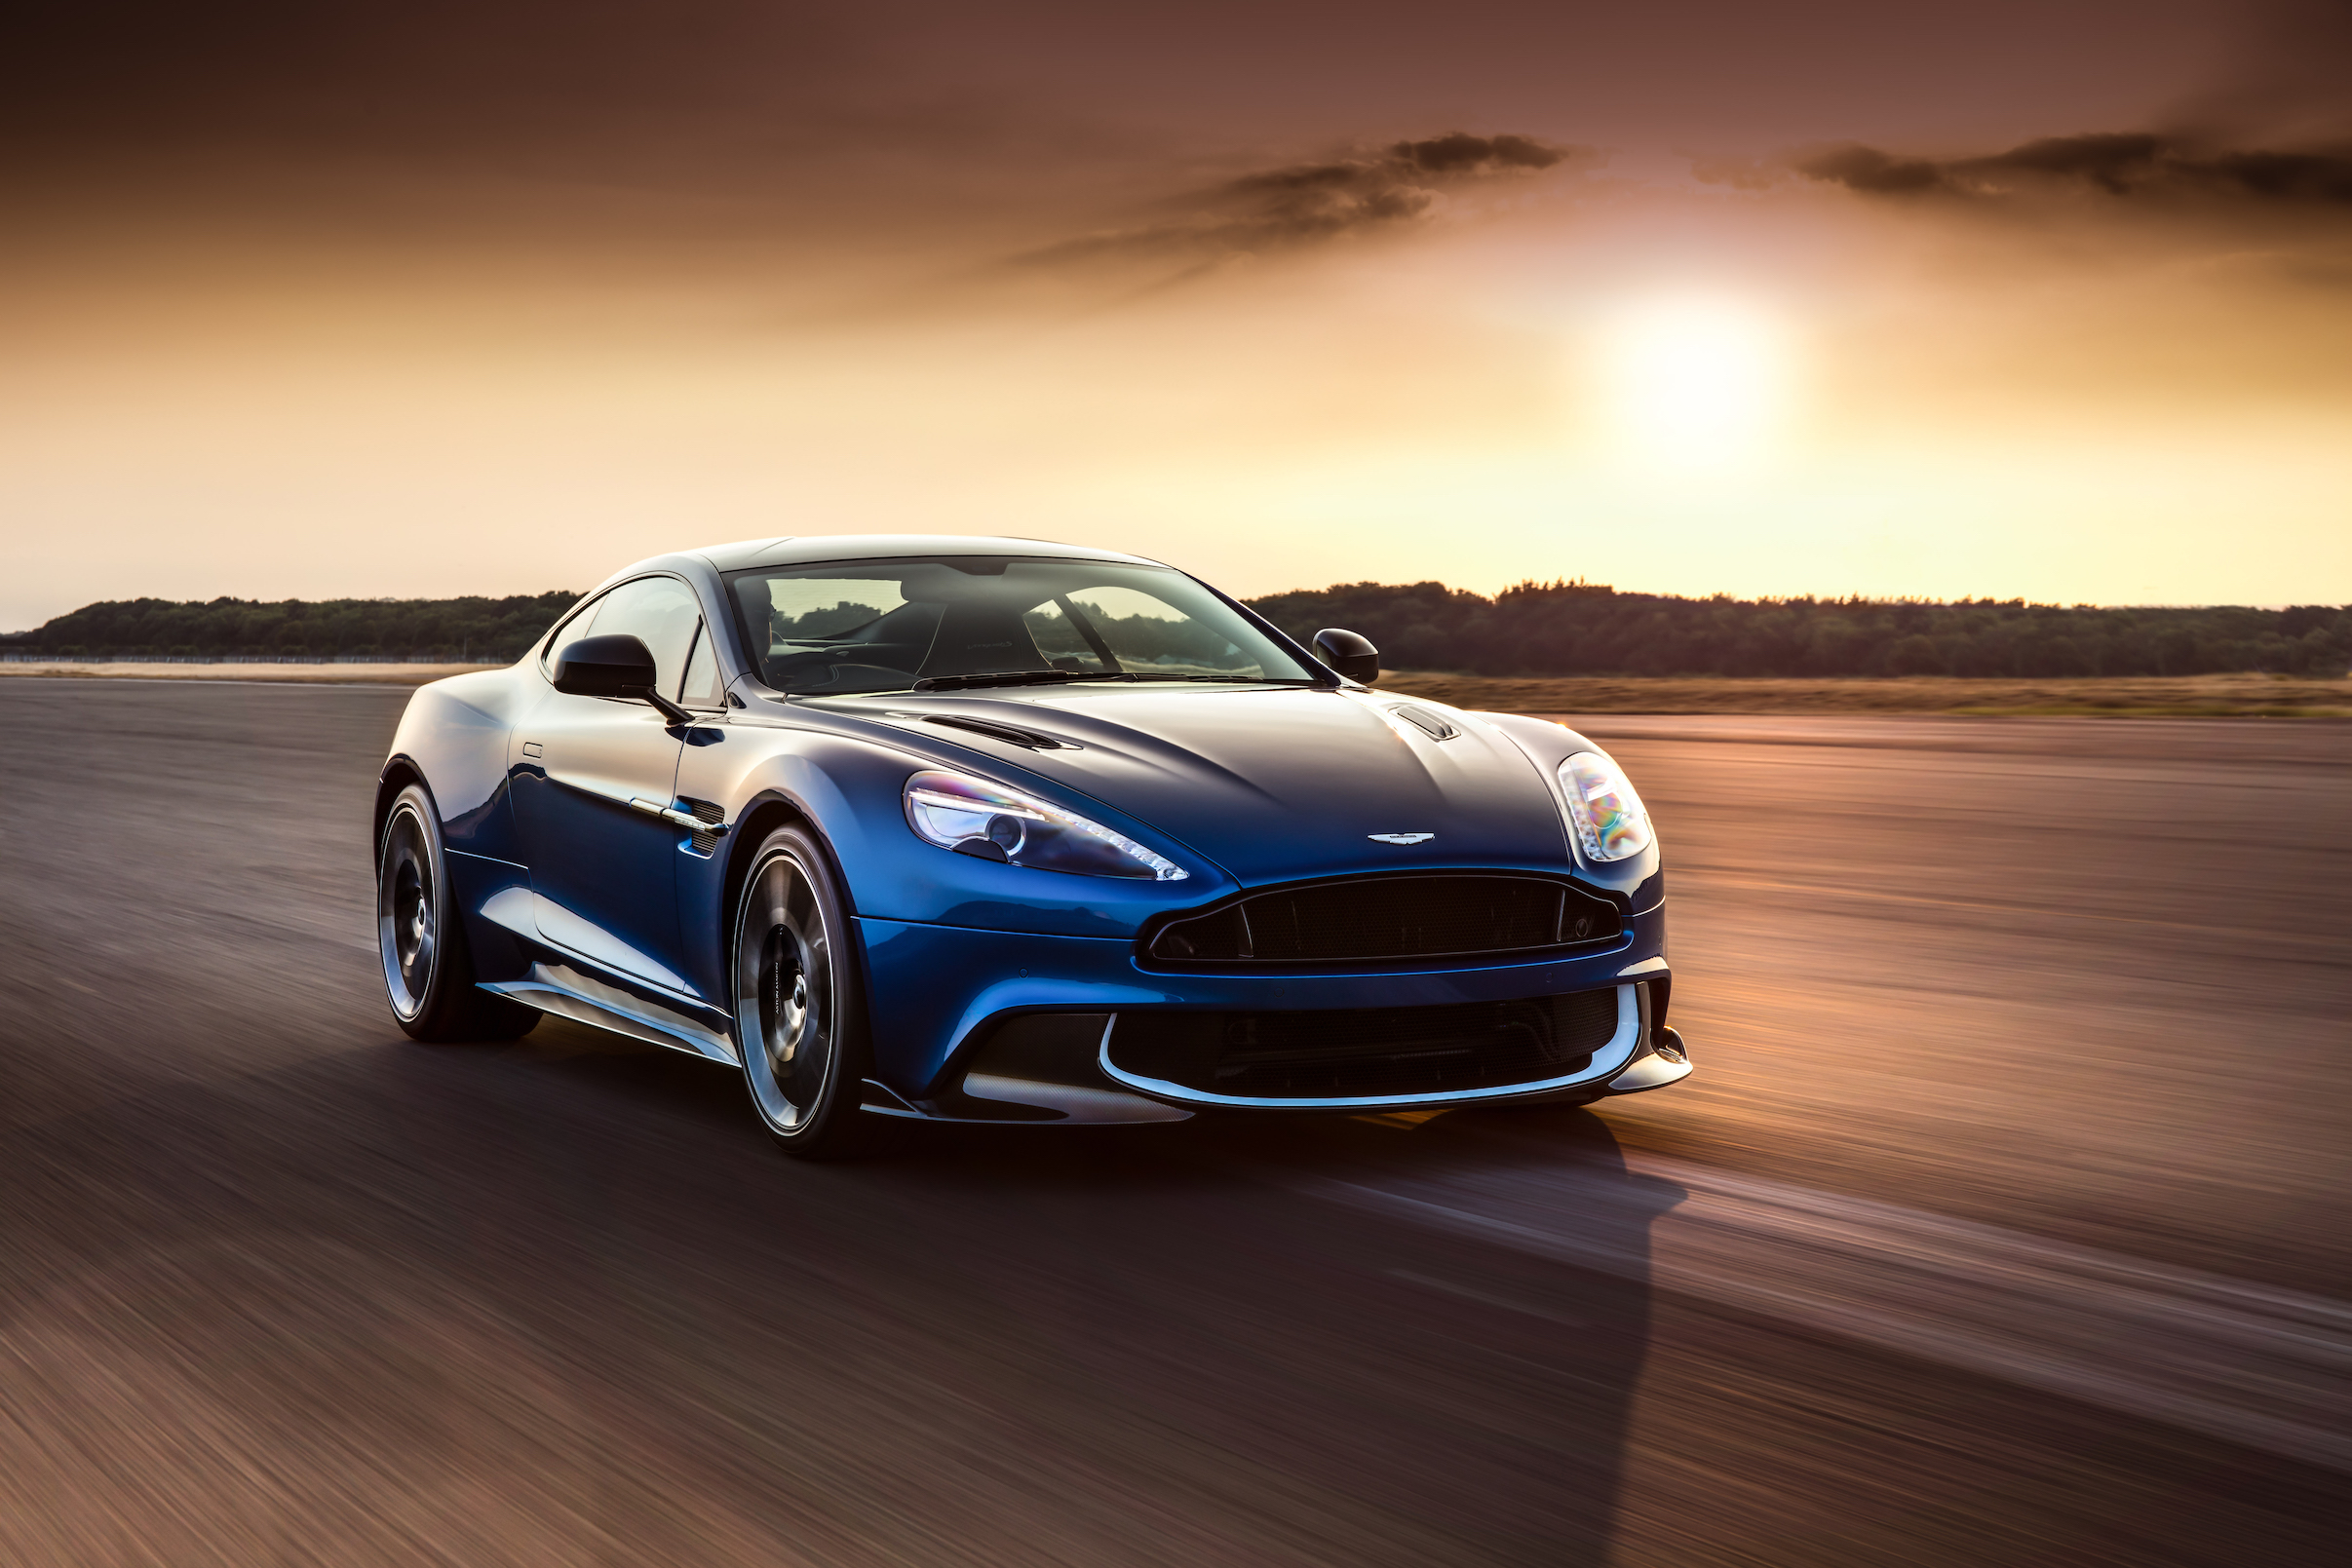 Aston Martin vanquish for sale McGurk